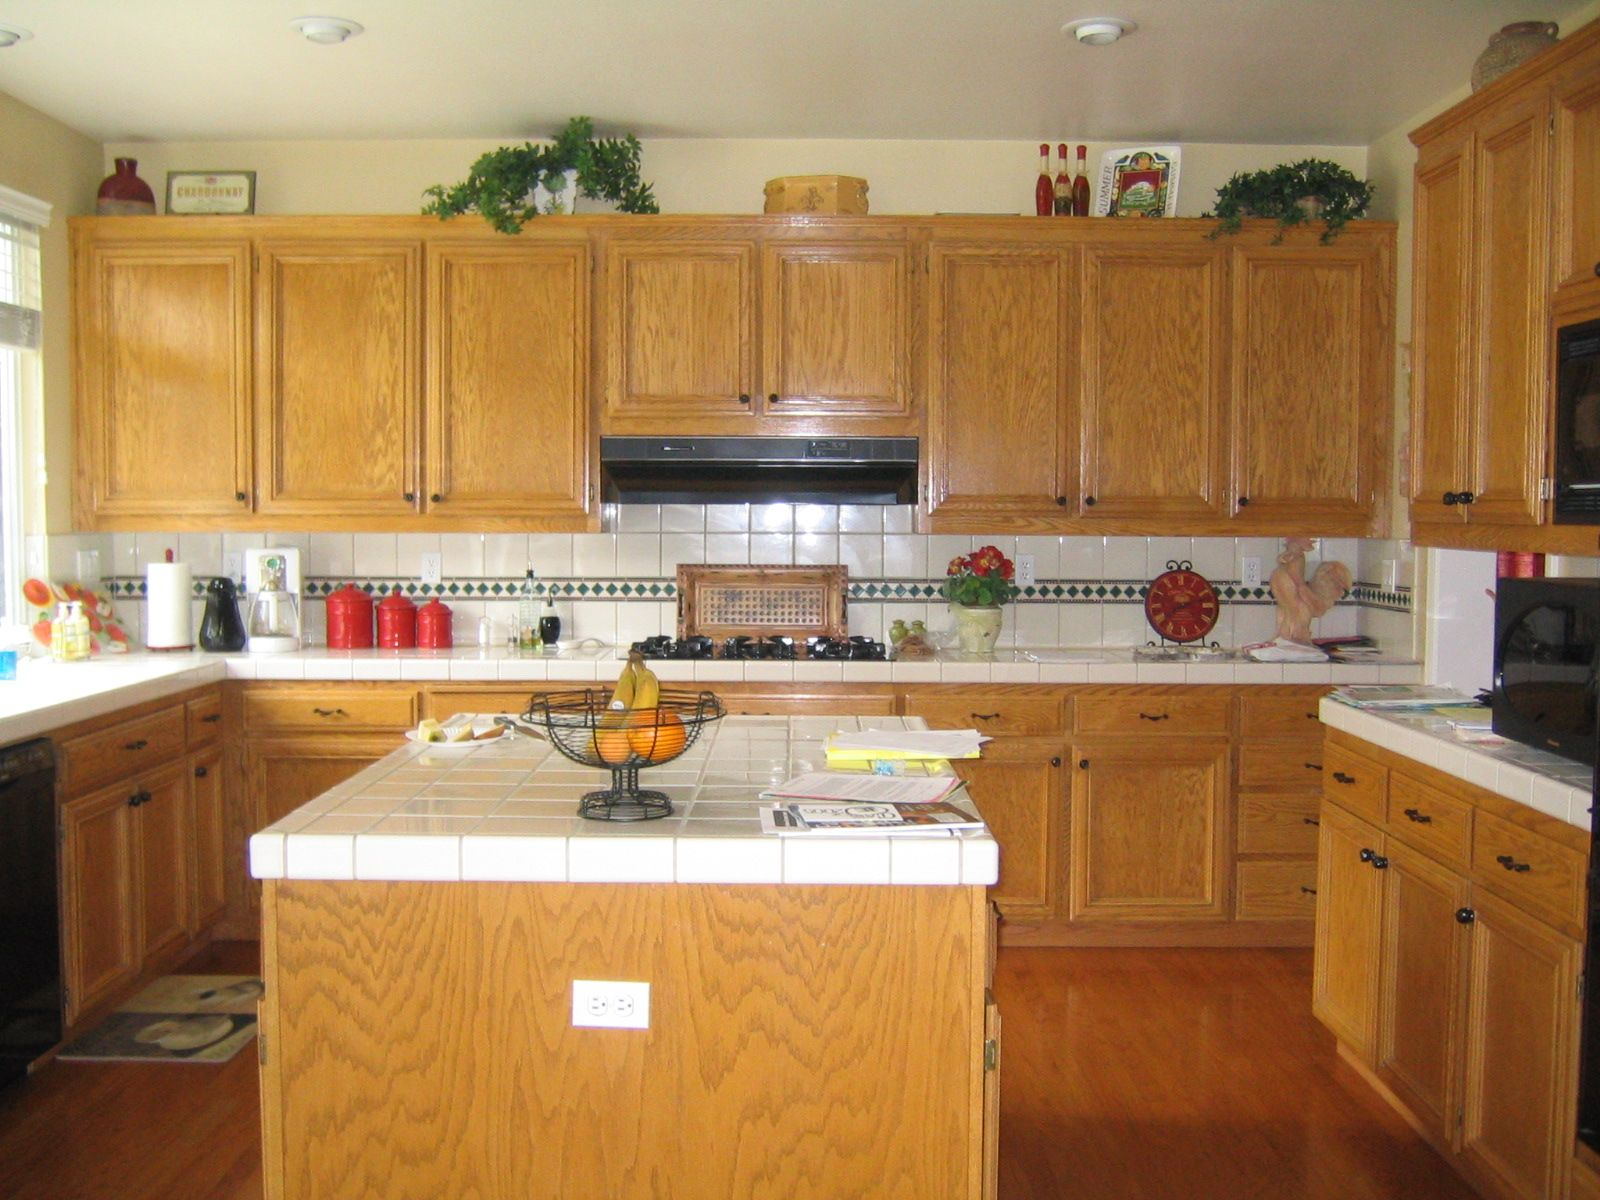 Painting golden oak cabinets - Kitchen Ideas With Black Appliances And Oak Cabinets Scxub